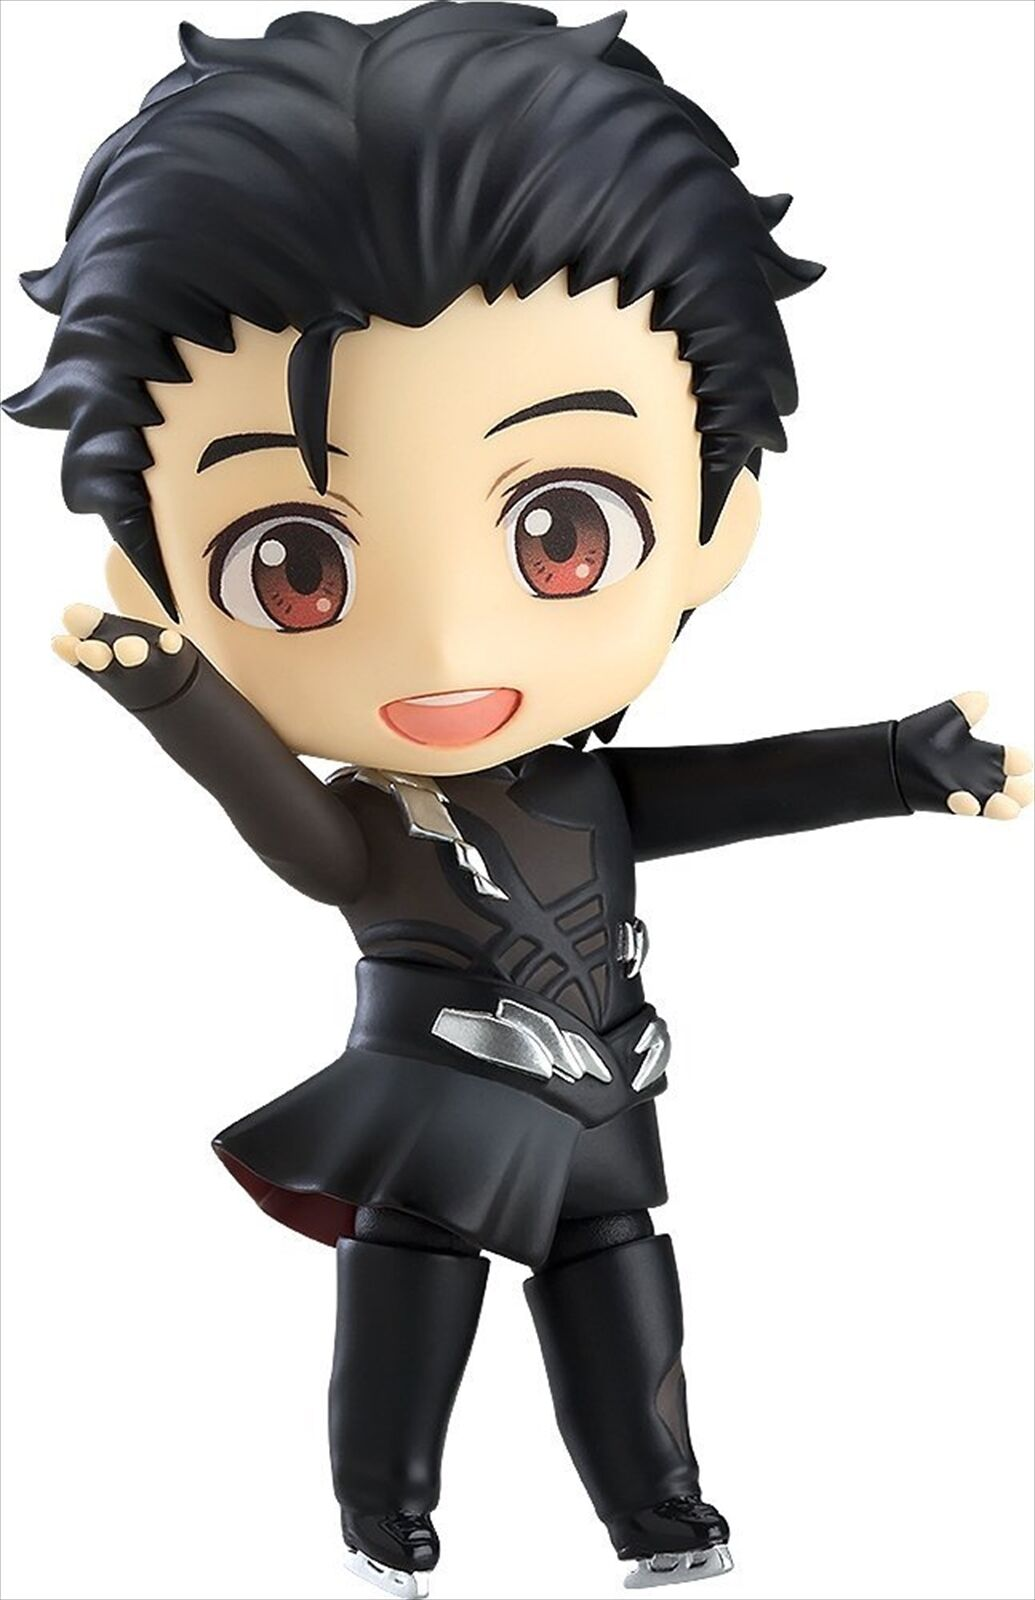 Orange Rouge Yuri    On Ice Yuri Katsuki Nendoroid Action FigureFigure